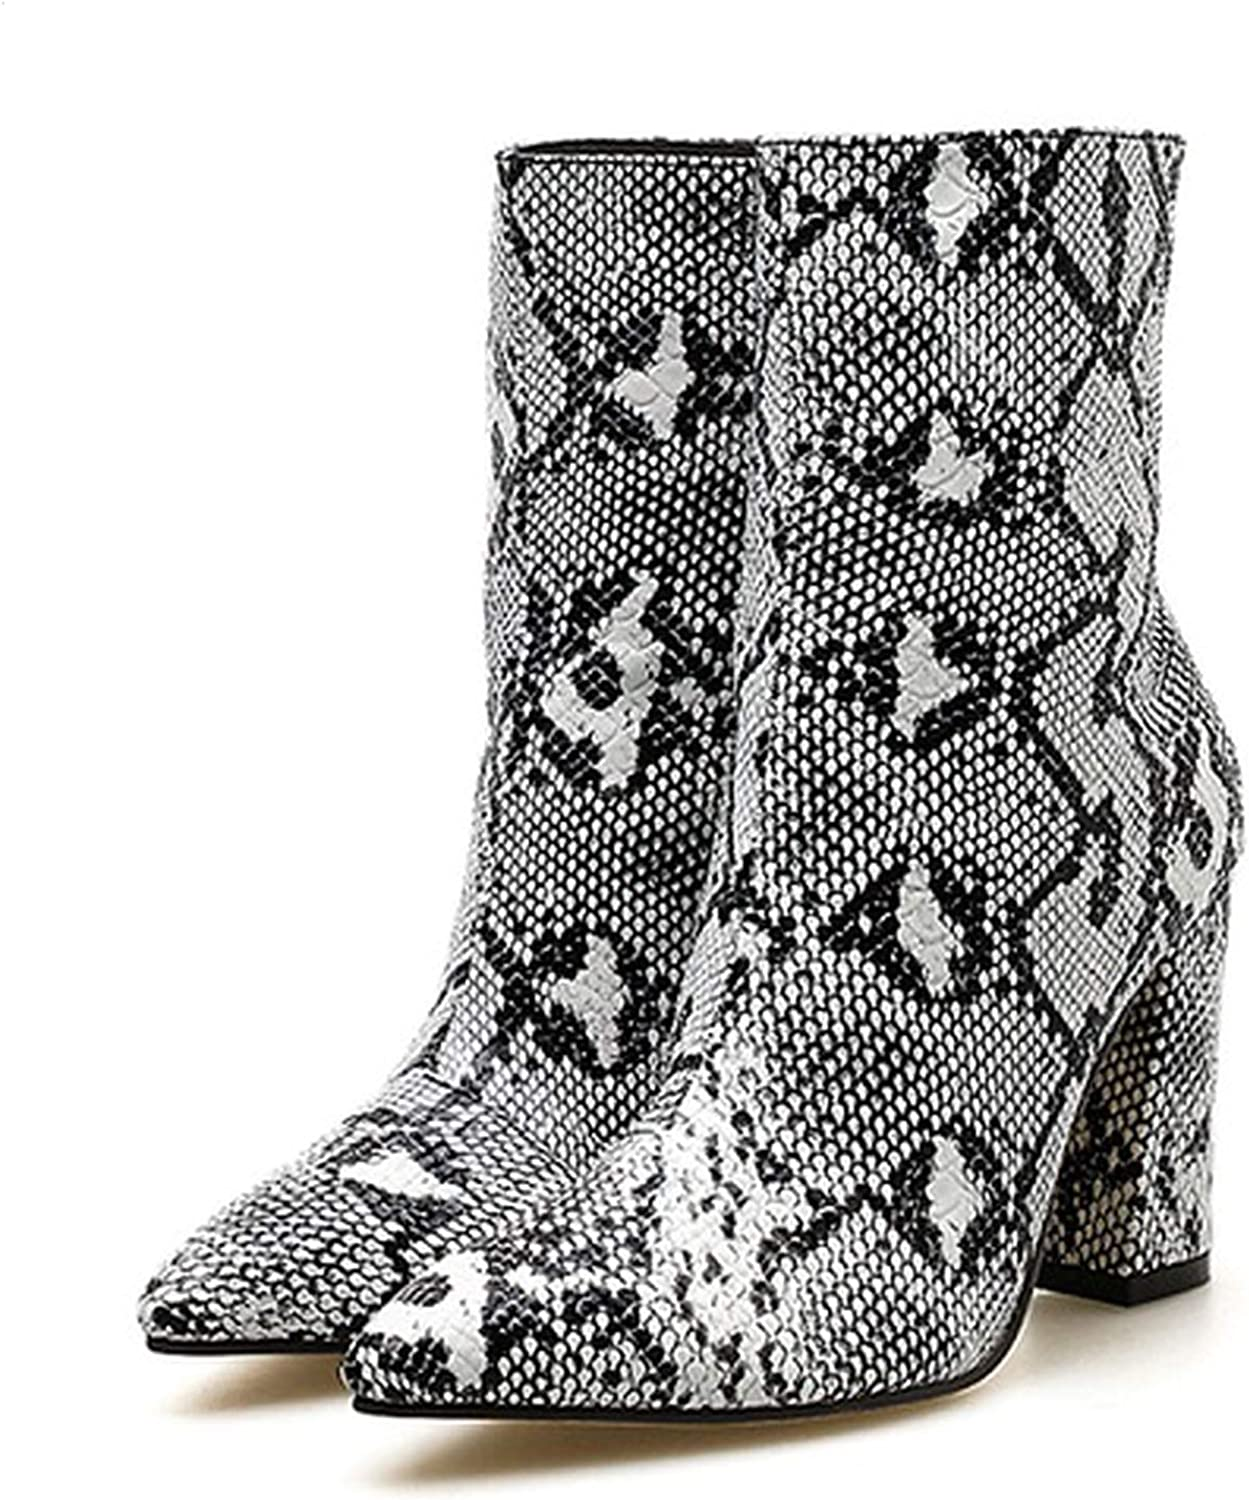 IOJHOIJOIJOIJMO Women Zipper Boots Snake Print Ankle Boots Square Heel Fashion Pointed Toe Ladies Sexy shoes 2019